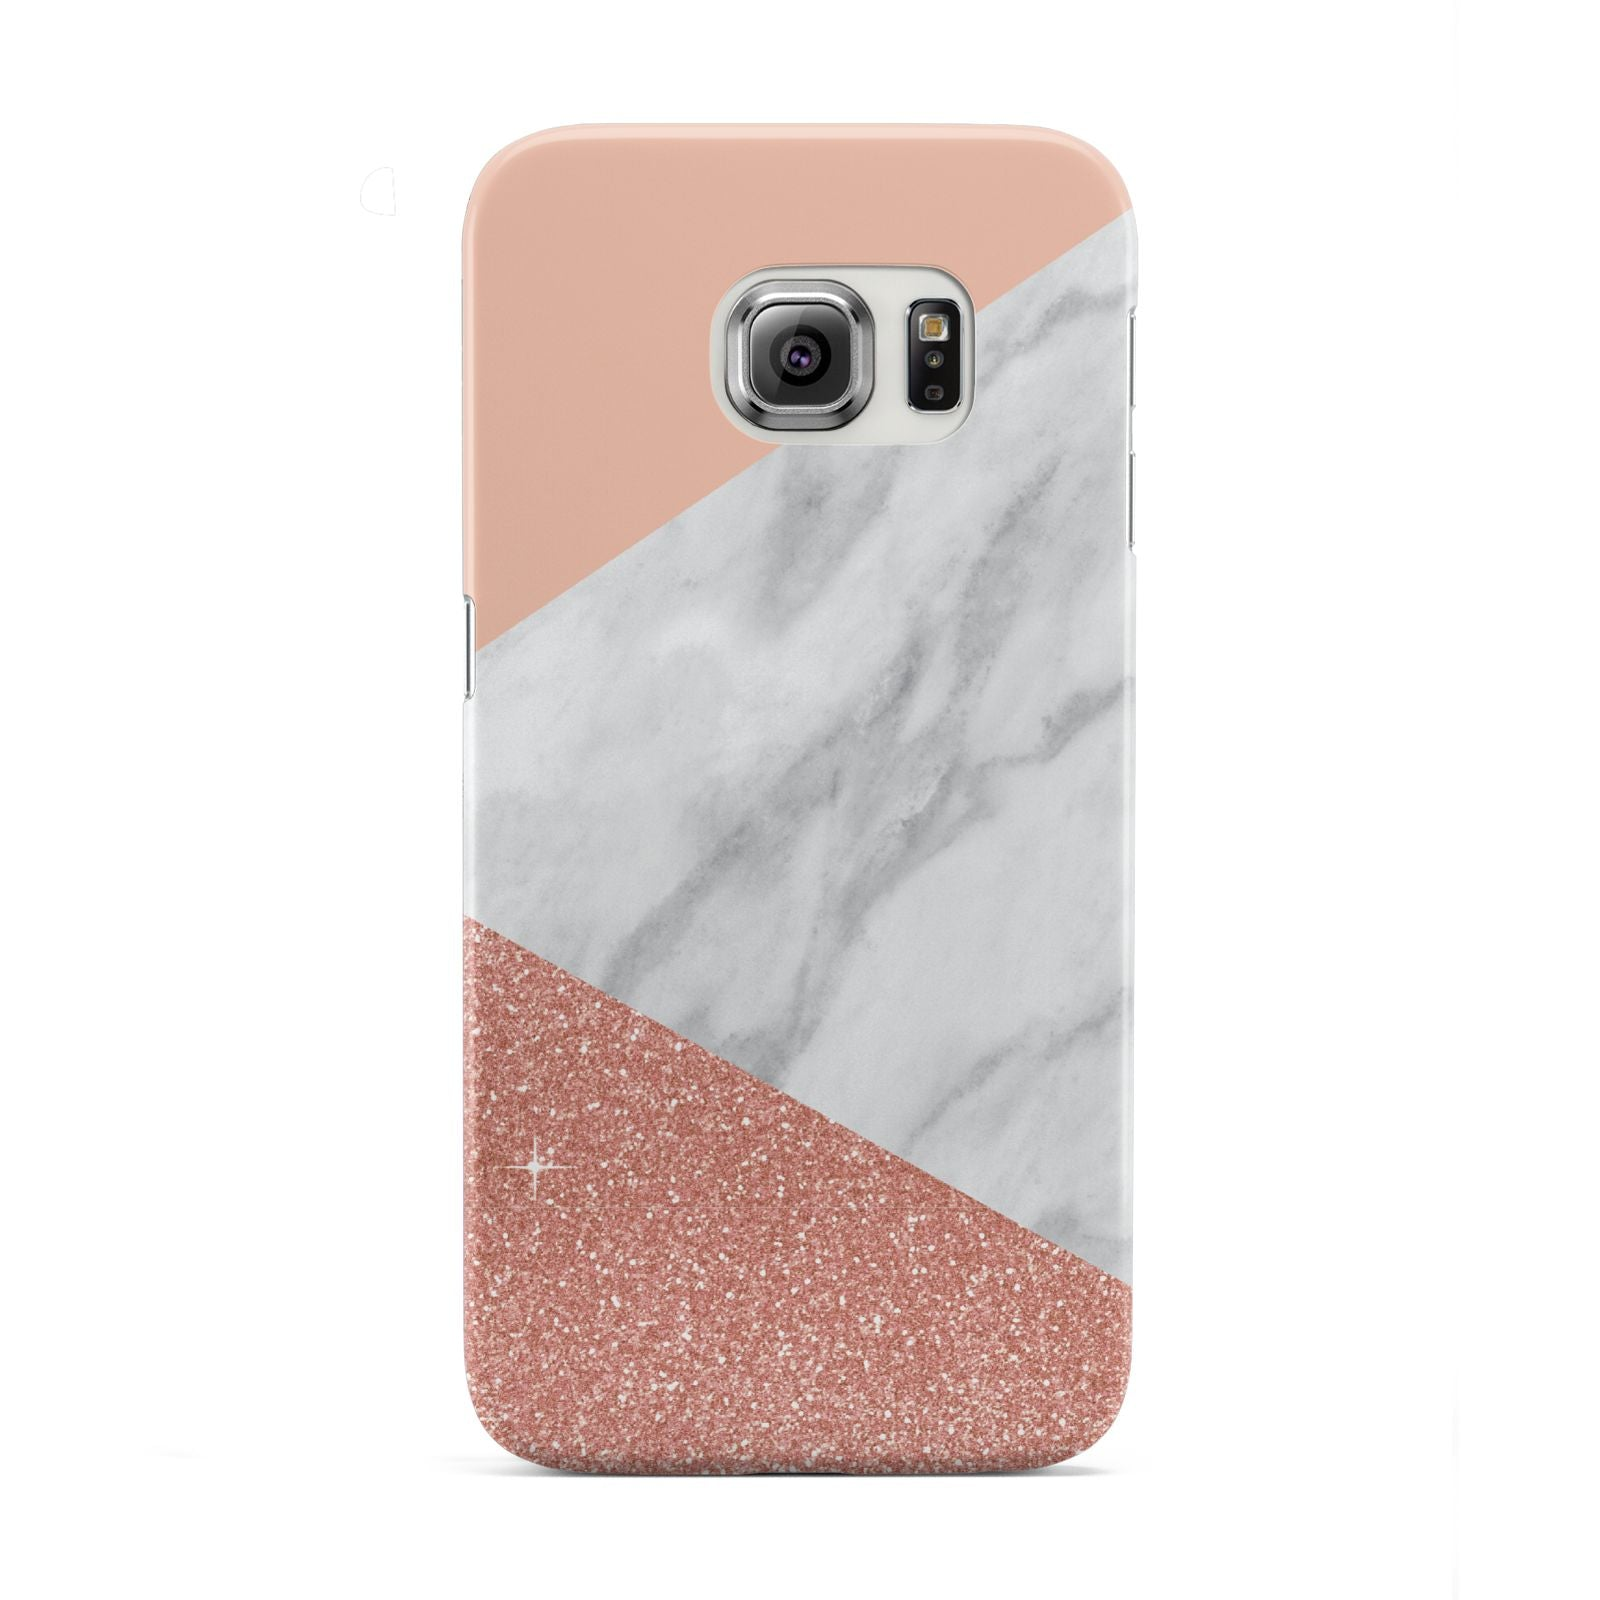 Marble White Rose Gold Samsung Galaxy S6 Edge Case